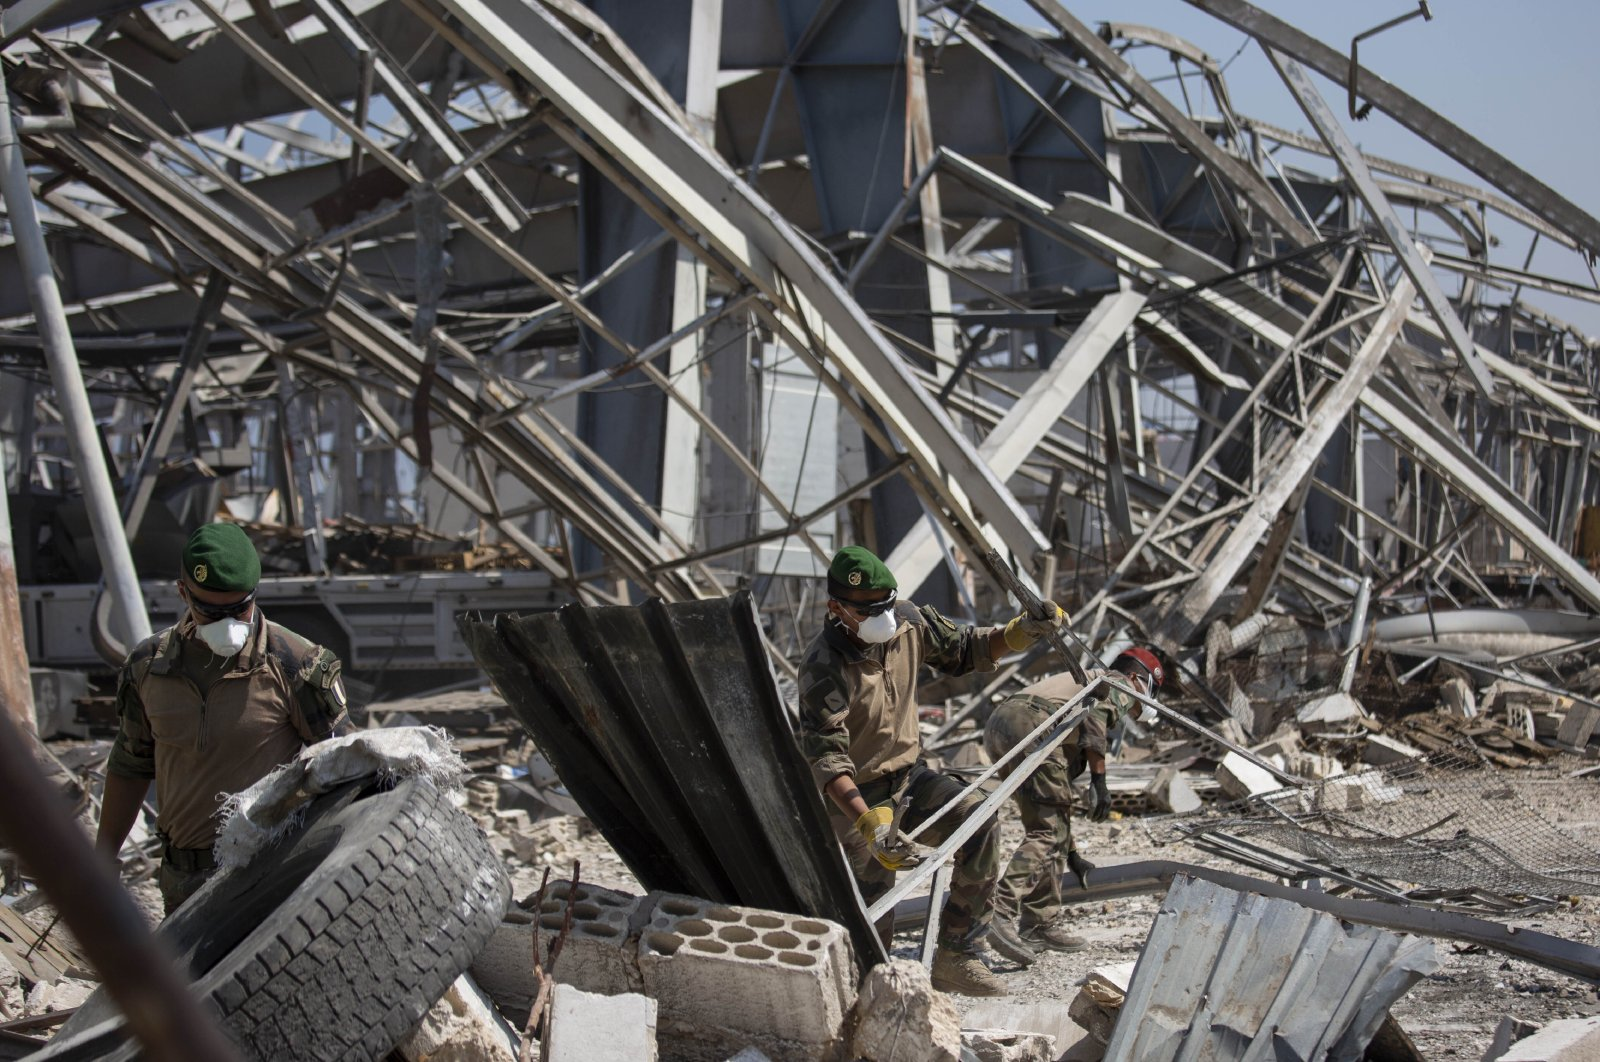 French soldiers clear debris as they work with Lebanese soldiers at the site of the Aug. 4 deadly blast in the port of Beirut that killed scores and wounded thousands, in Beirut, Lebanon, Wednesday, Aug. 26, 2020. (AP Photo)